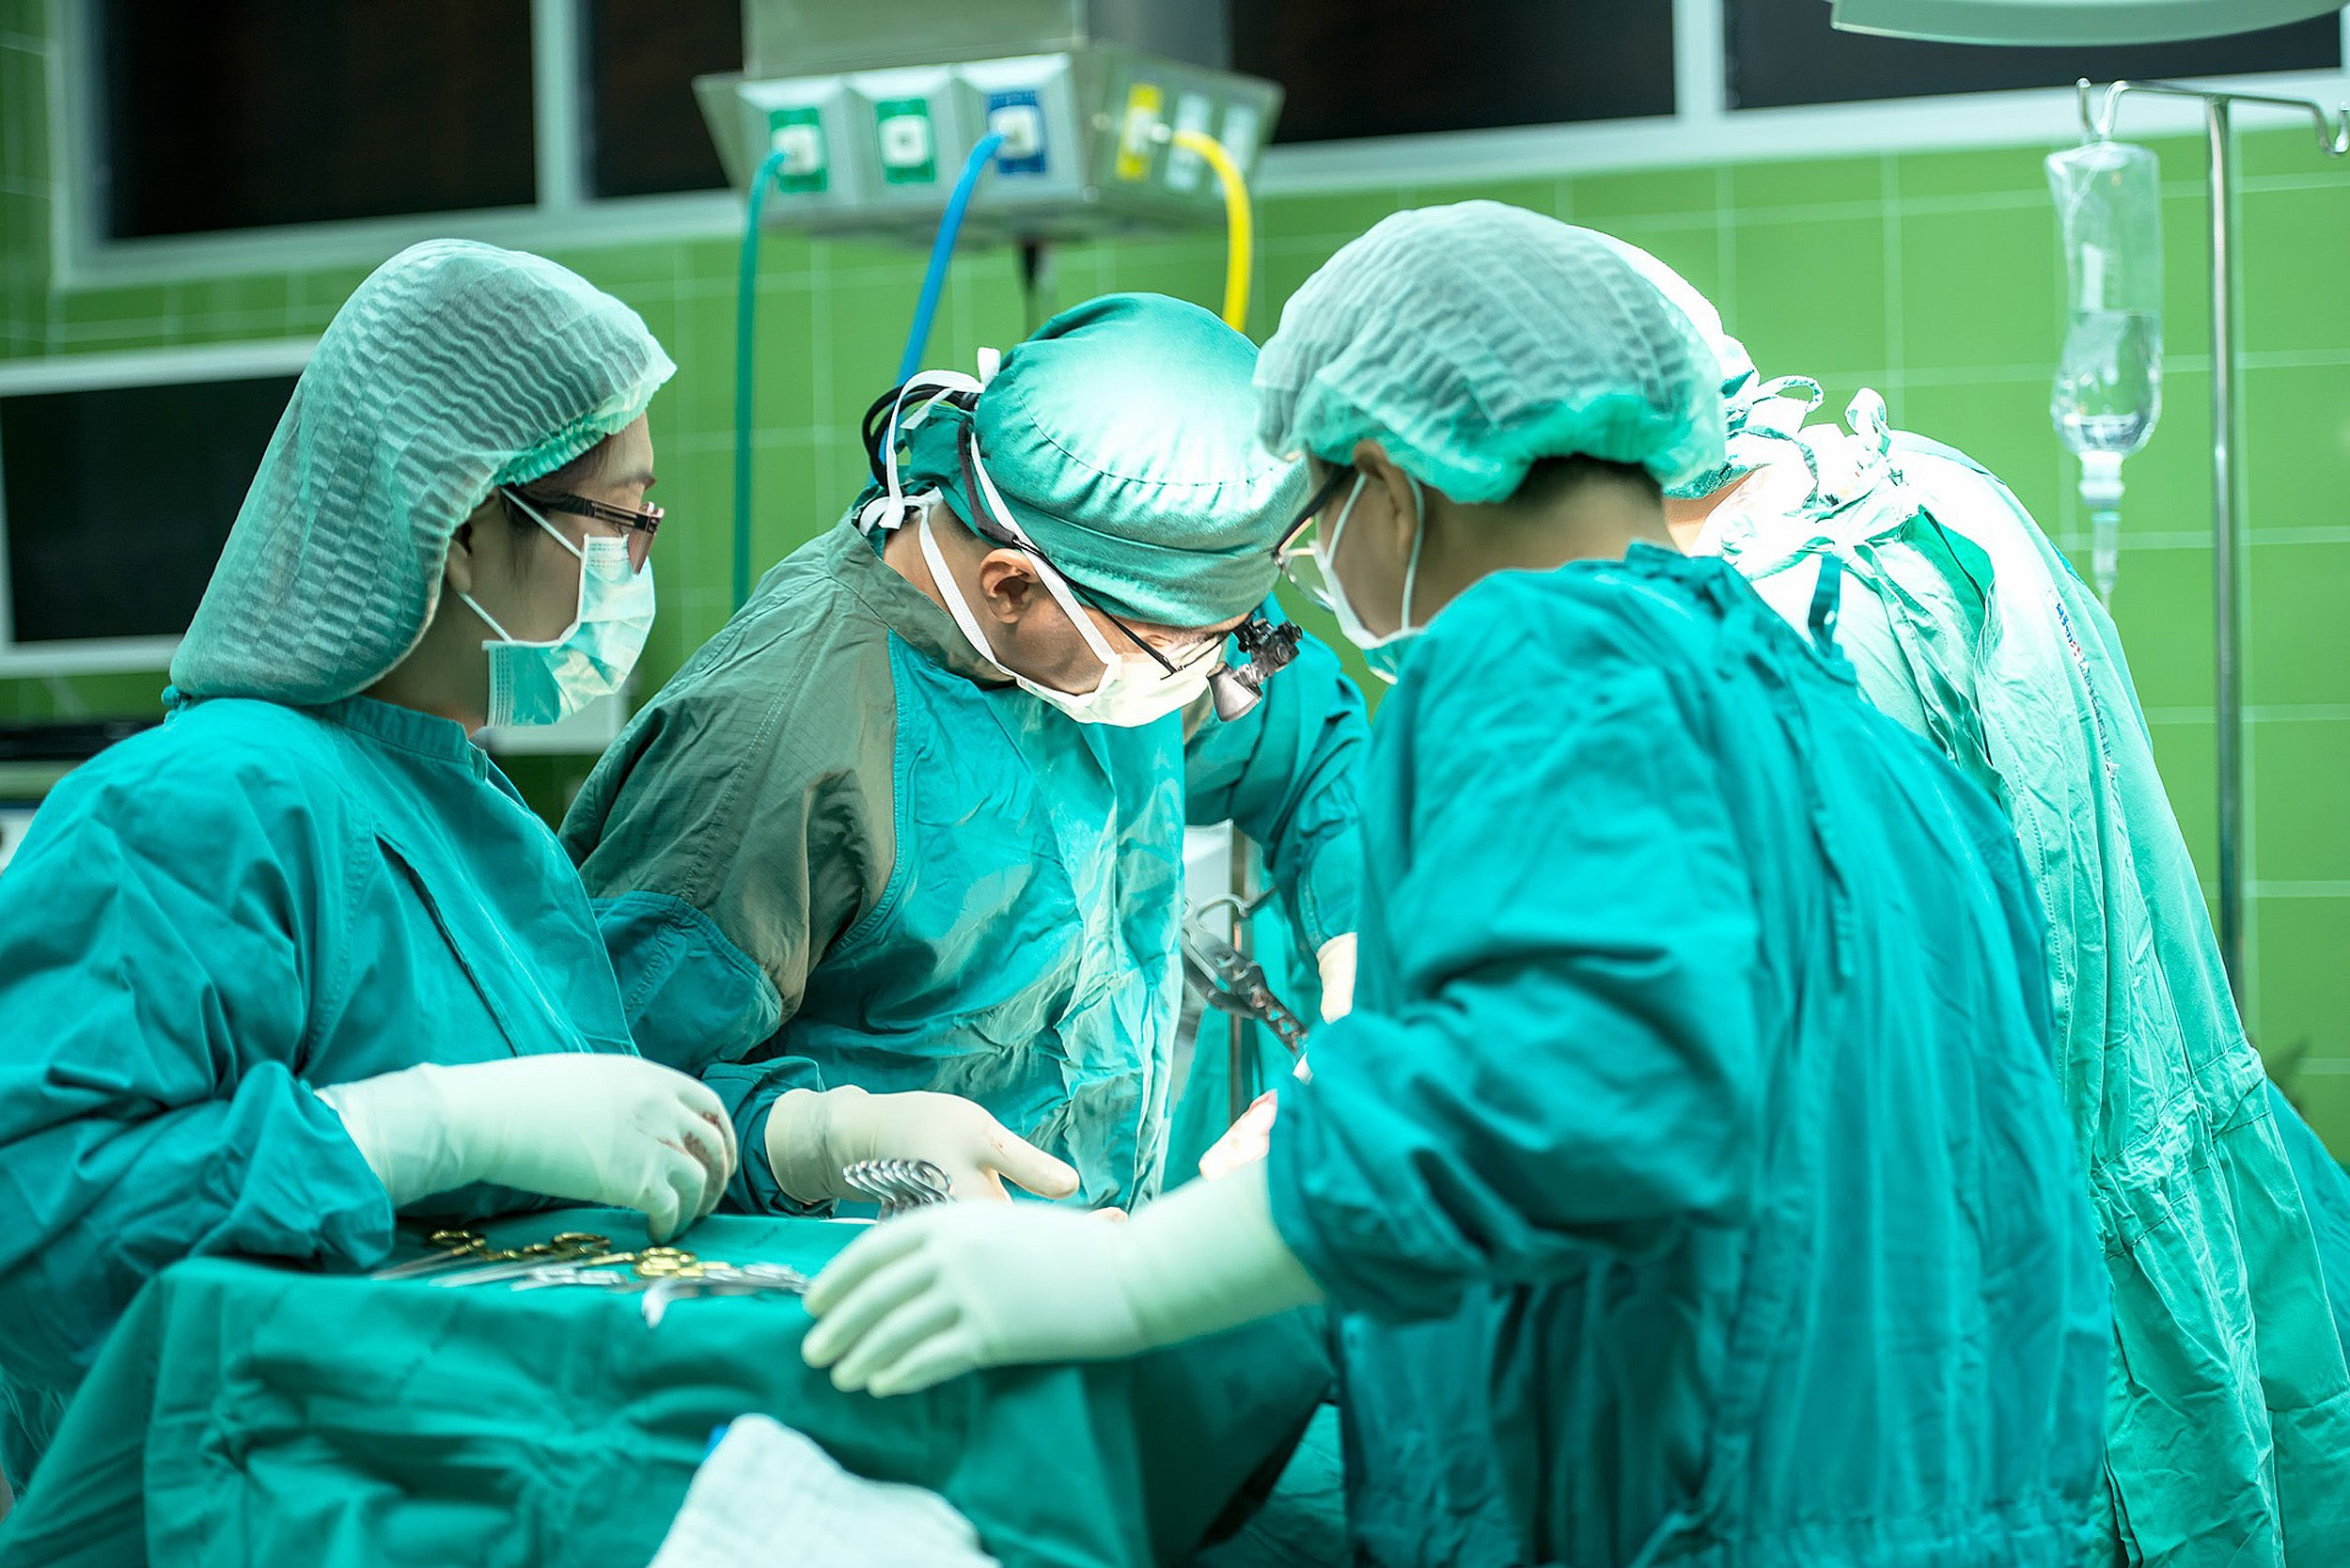 Surgeons performing an operation